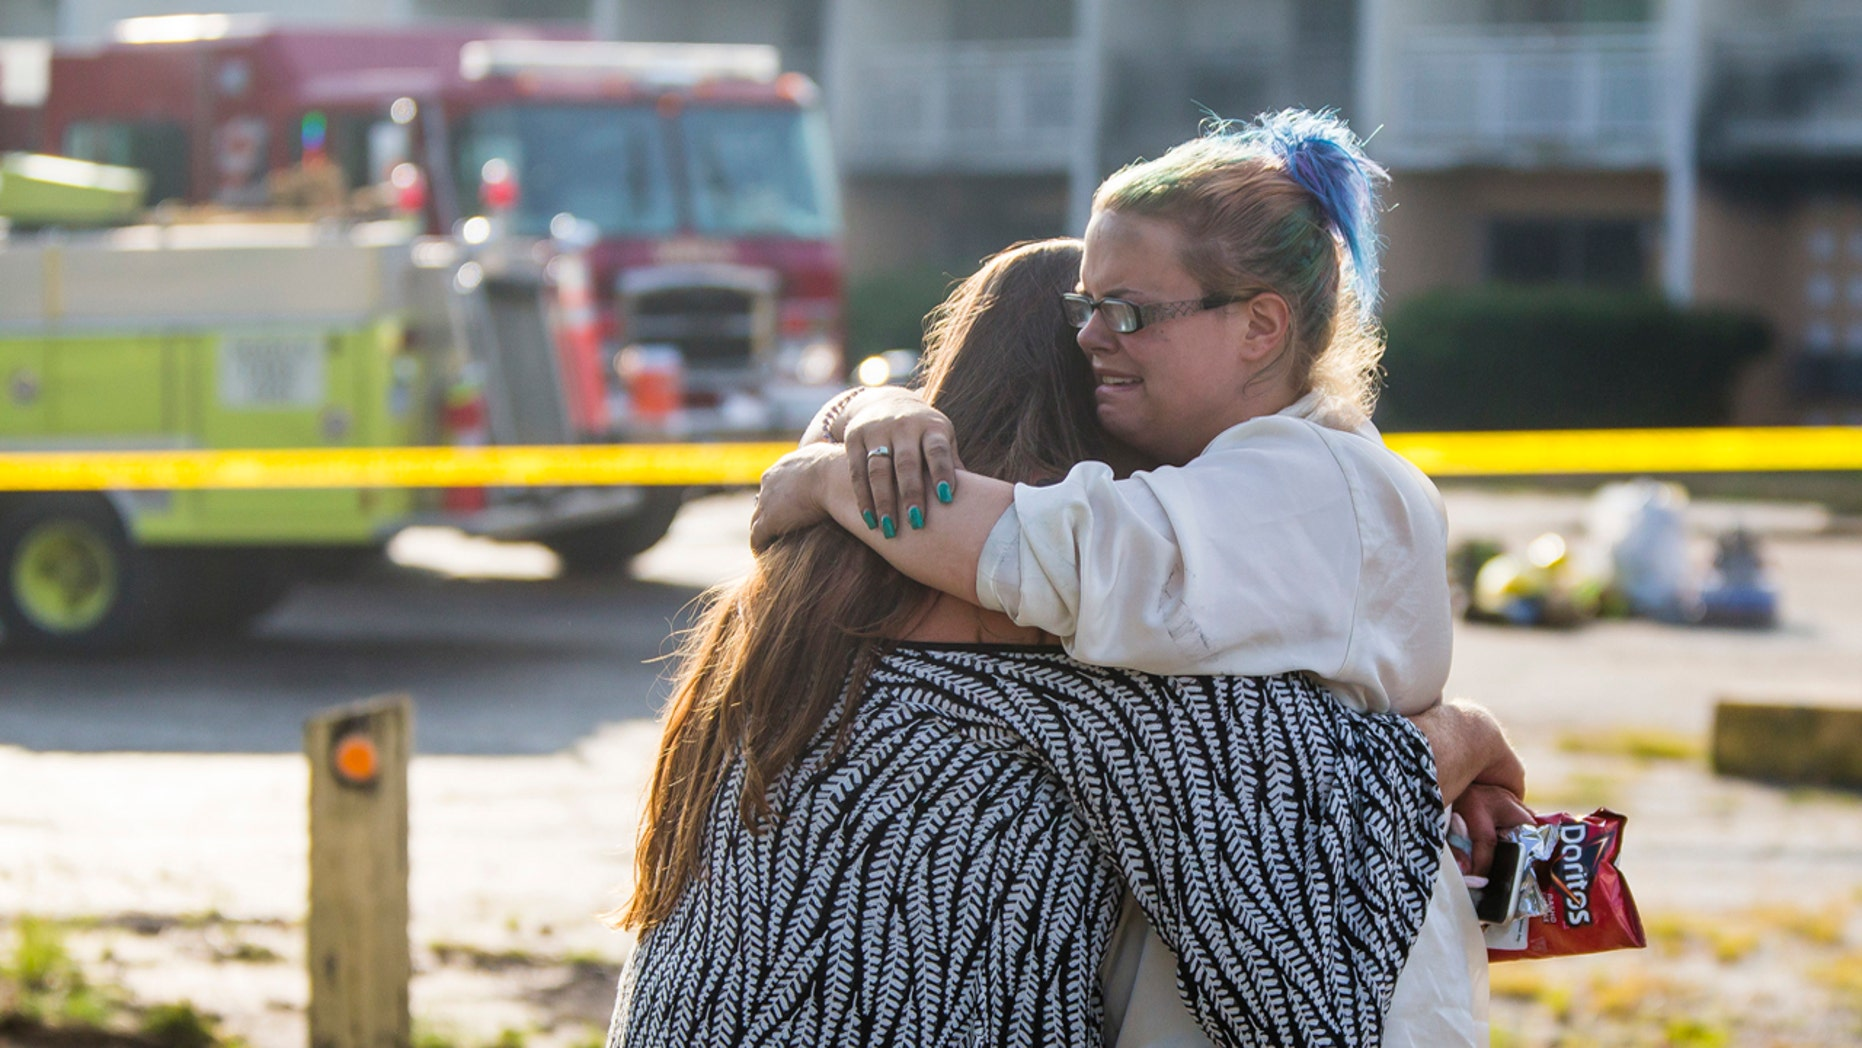 Hotel residents Cassundra Clements, left, and Sarah Sanders comfort one another after a fire at the Cosmo Extended Stay Motel in Sodus Township, Mich., July 28, 2018.